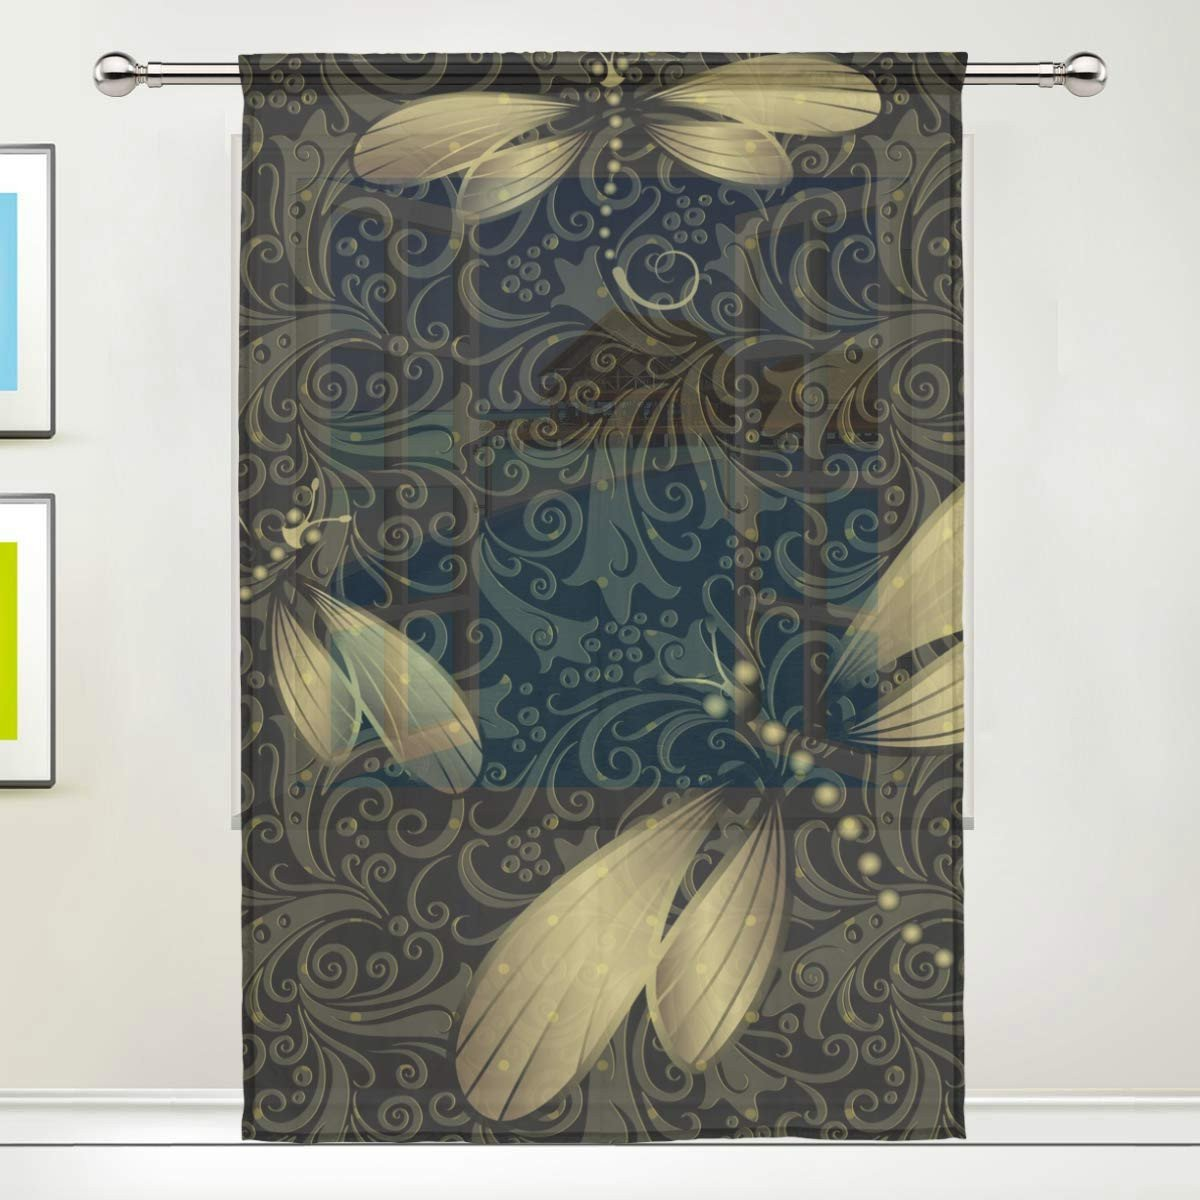 "Pretty Curtains for Bedroom Luxury Dragon Sword Black Golden Vintage Dragonfly Sheer Window Curtain Voile Drape for Kitchen Living Room or Kids Bedroom 55"" W X 84"" L 1 Panel"